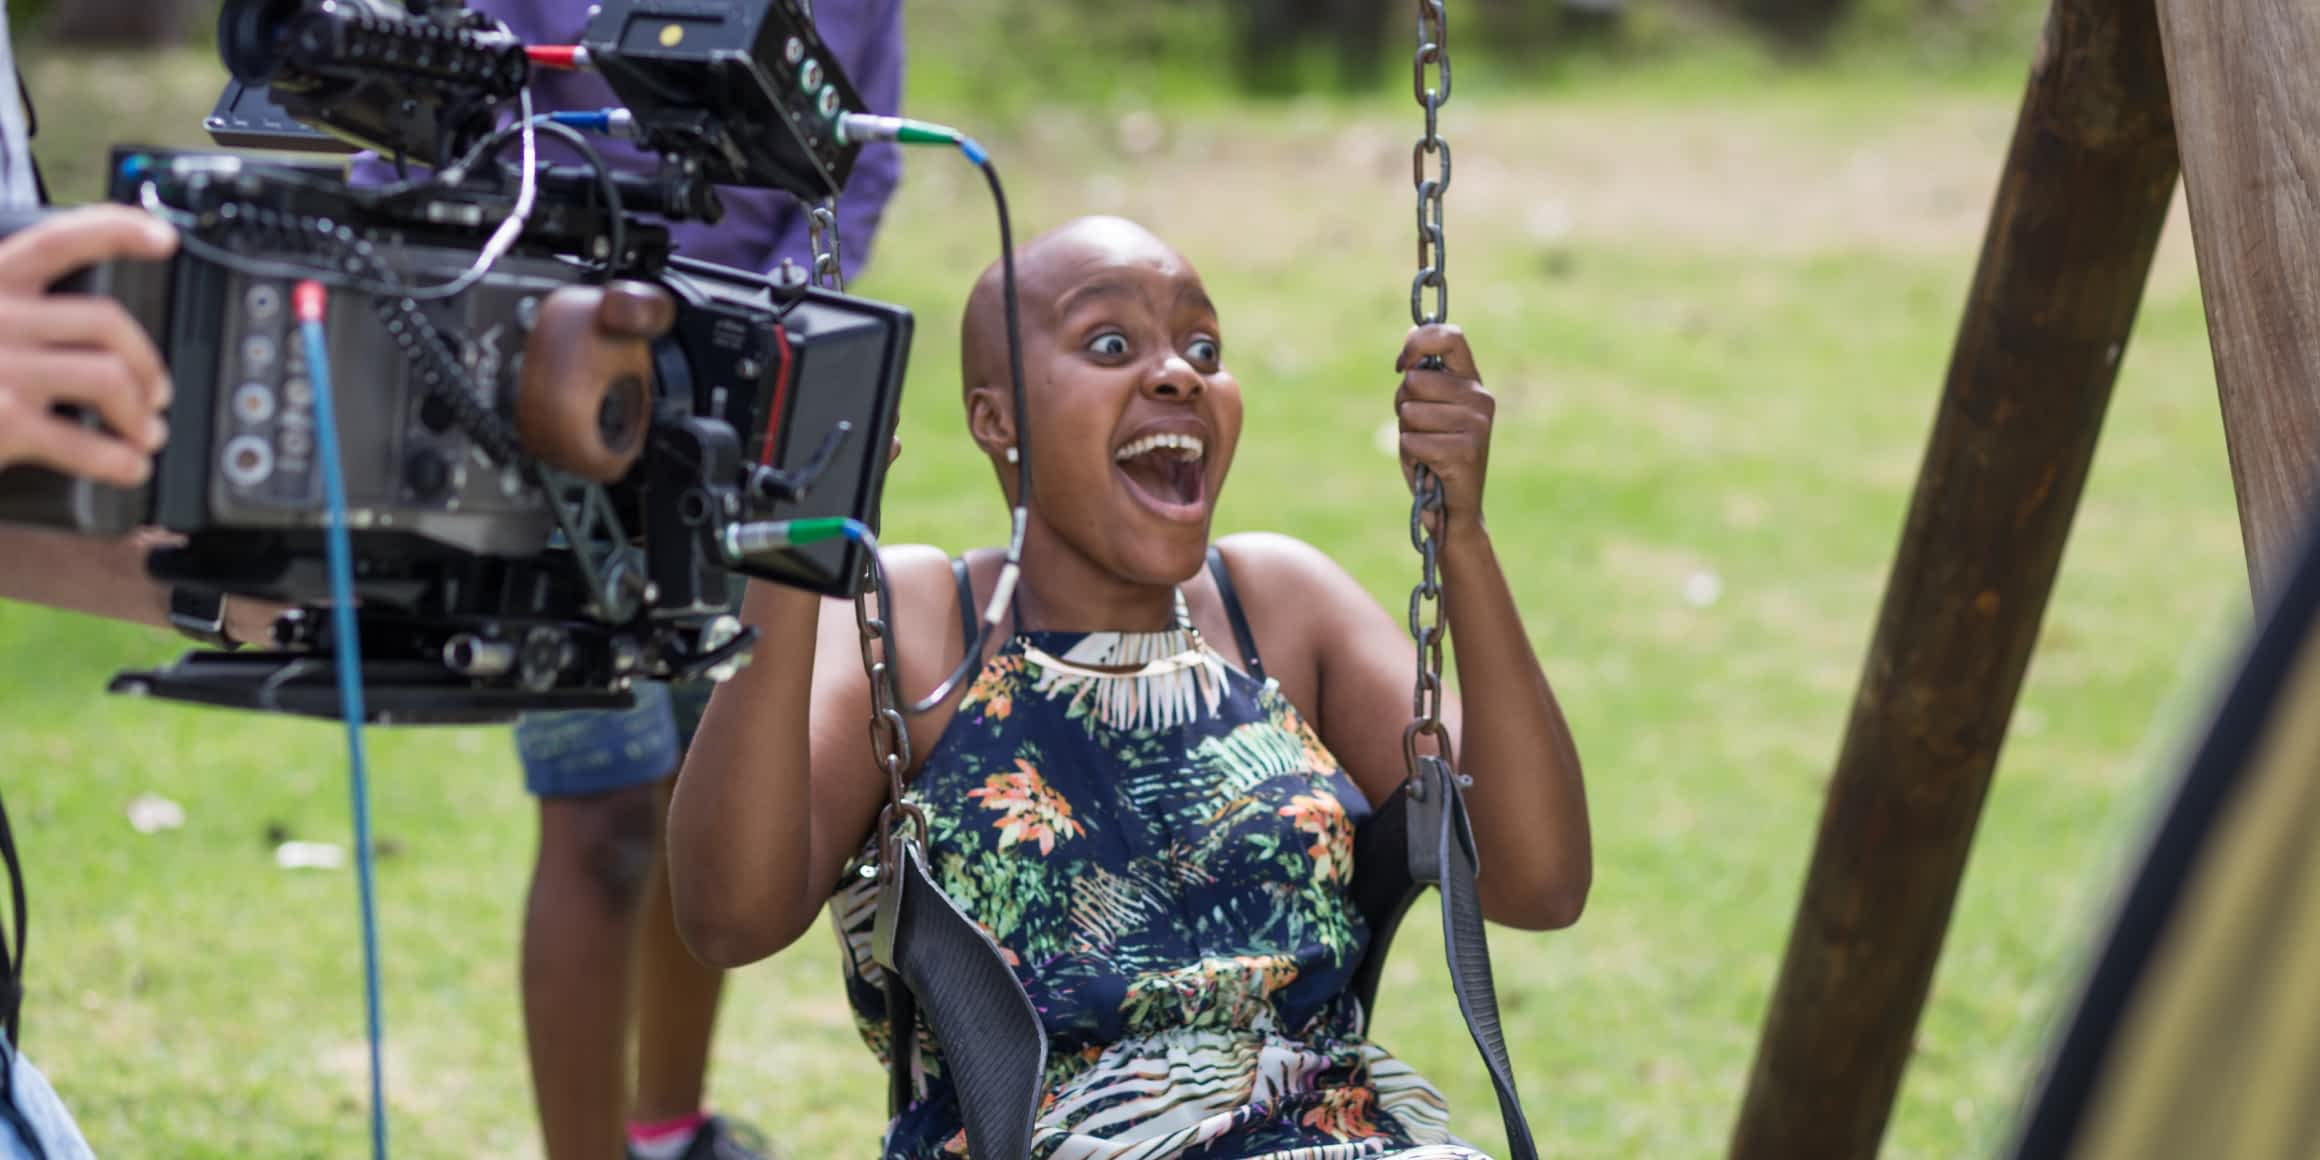 Leukaemia Awareness Campaign - Blood Stem Cell Donor Registration Video - Behind The Scenes - Cancer Patient in Playground Having Fun